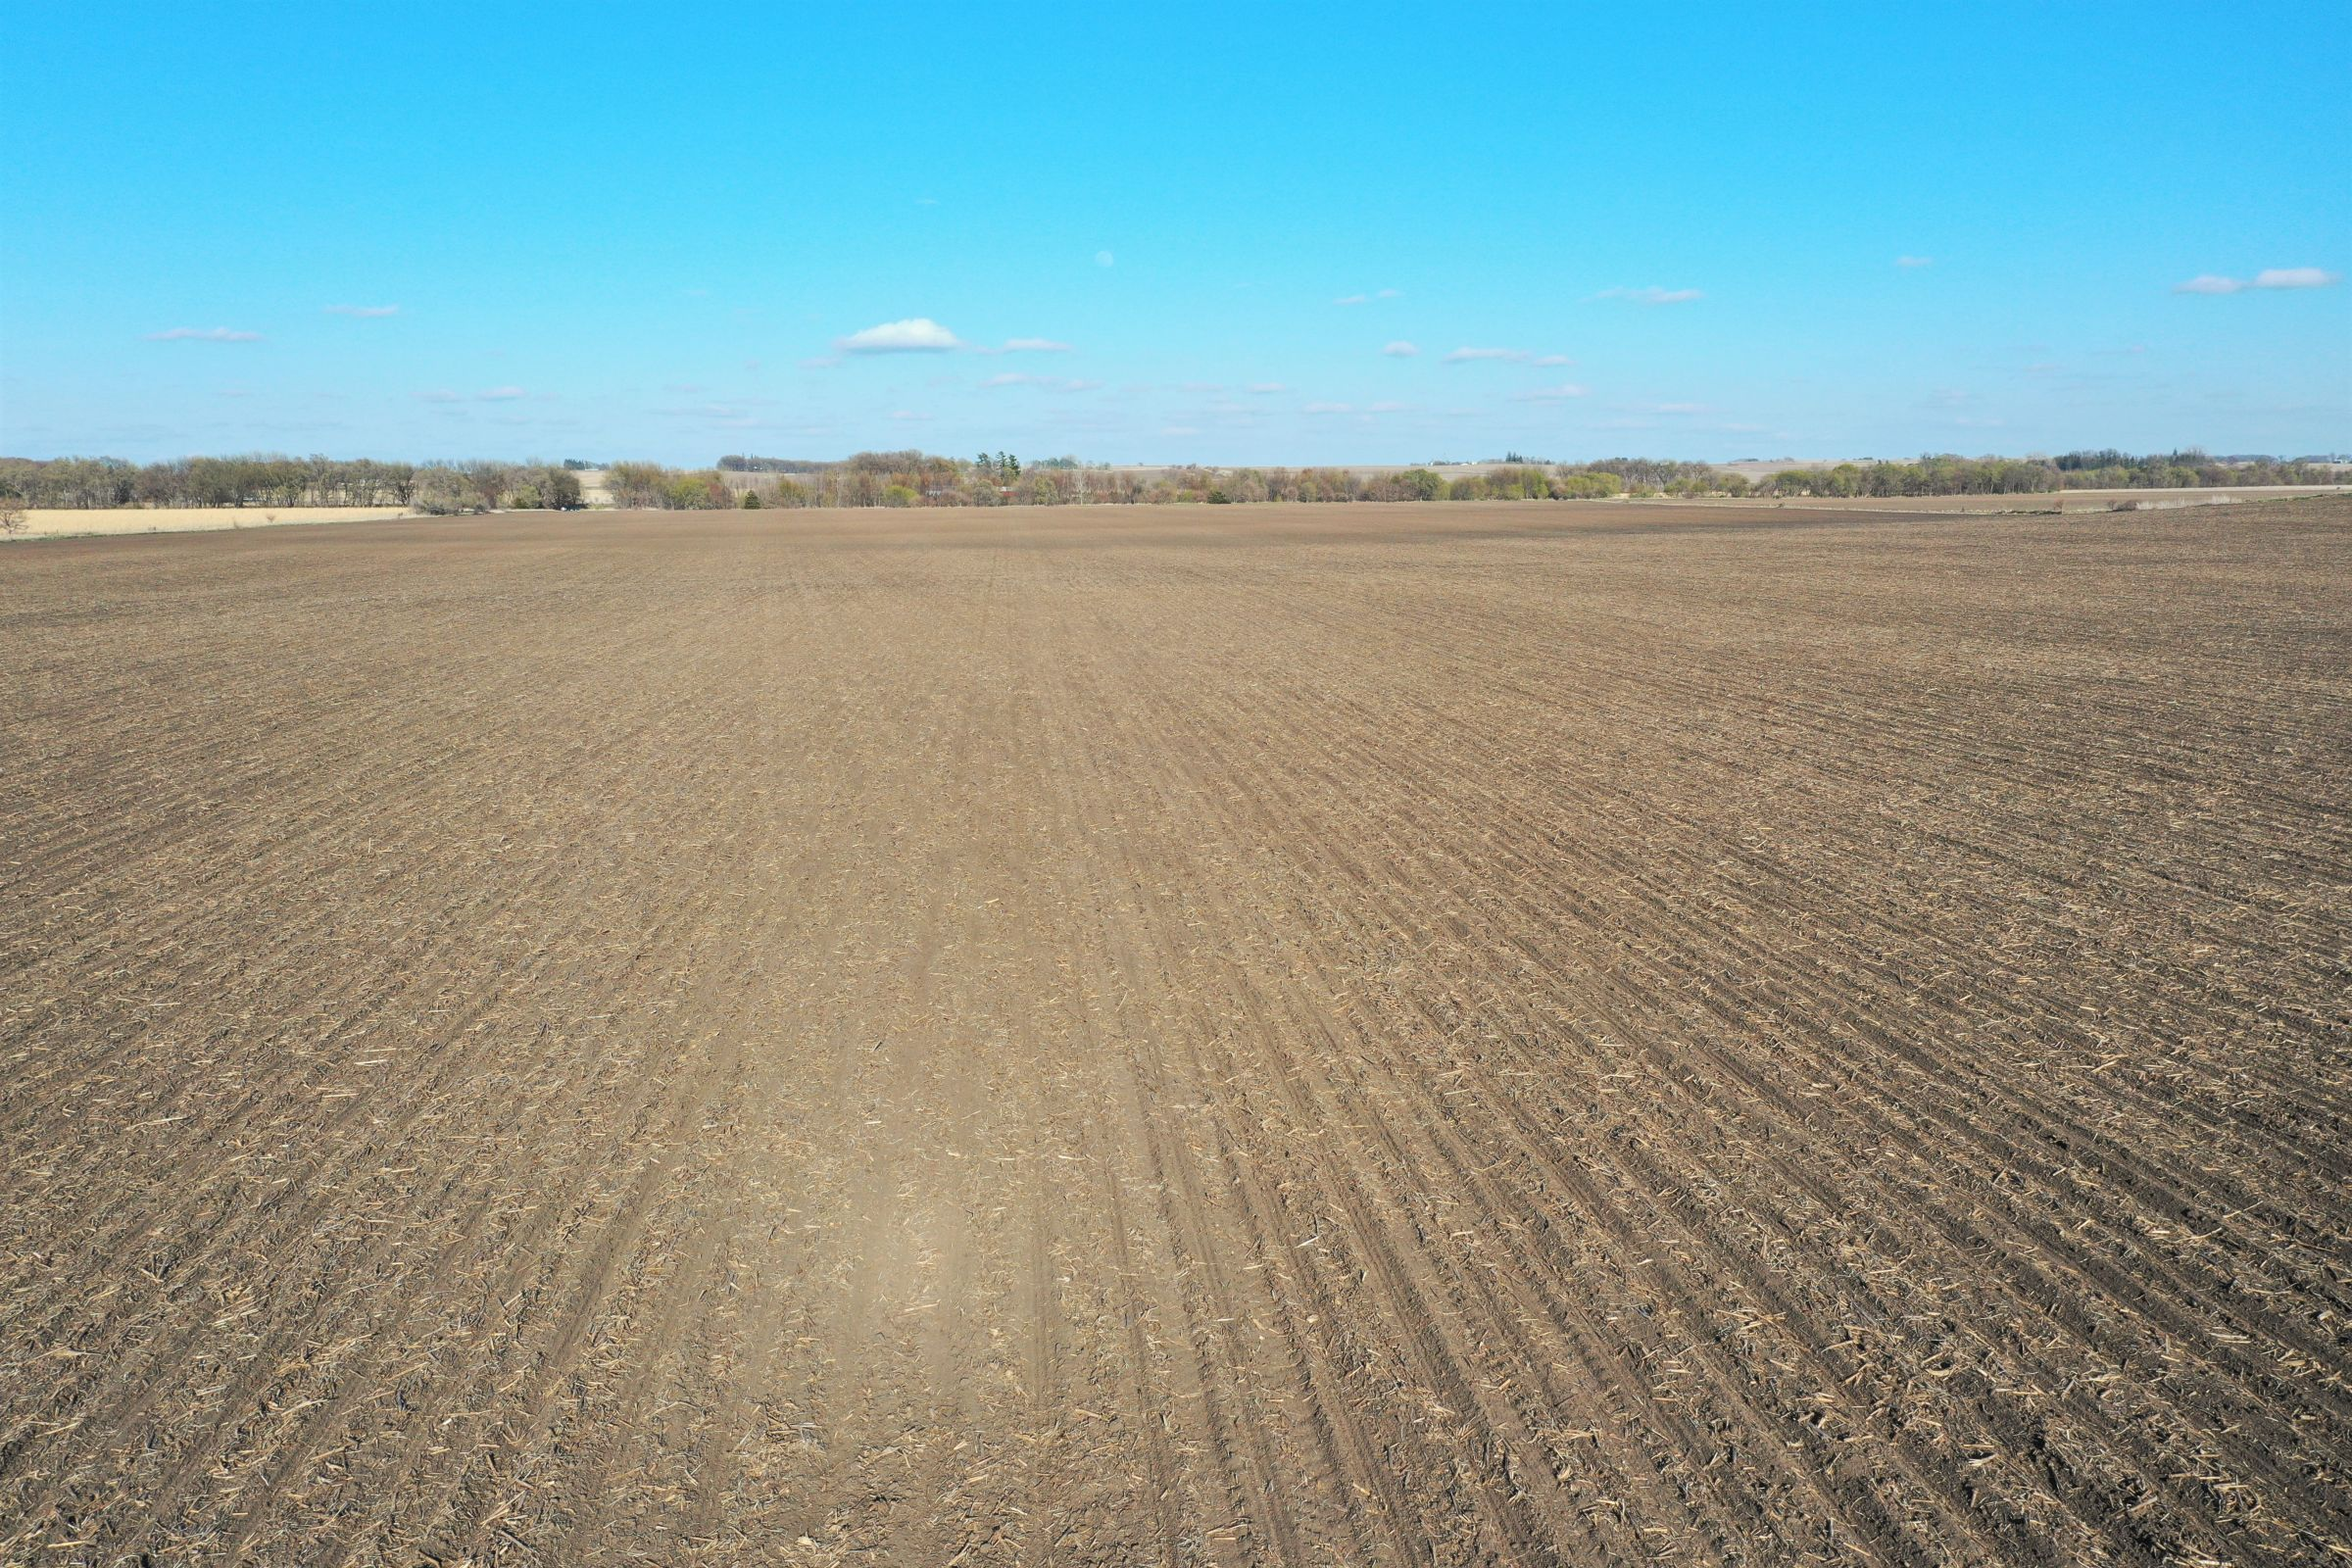 floyd-county-iowa-80-acres-listing-number-15487-4-2021-04-26-011849.JPG